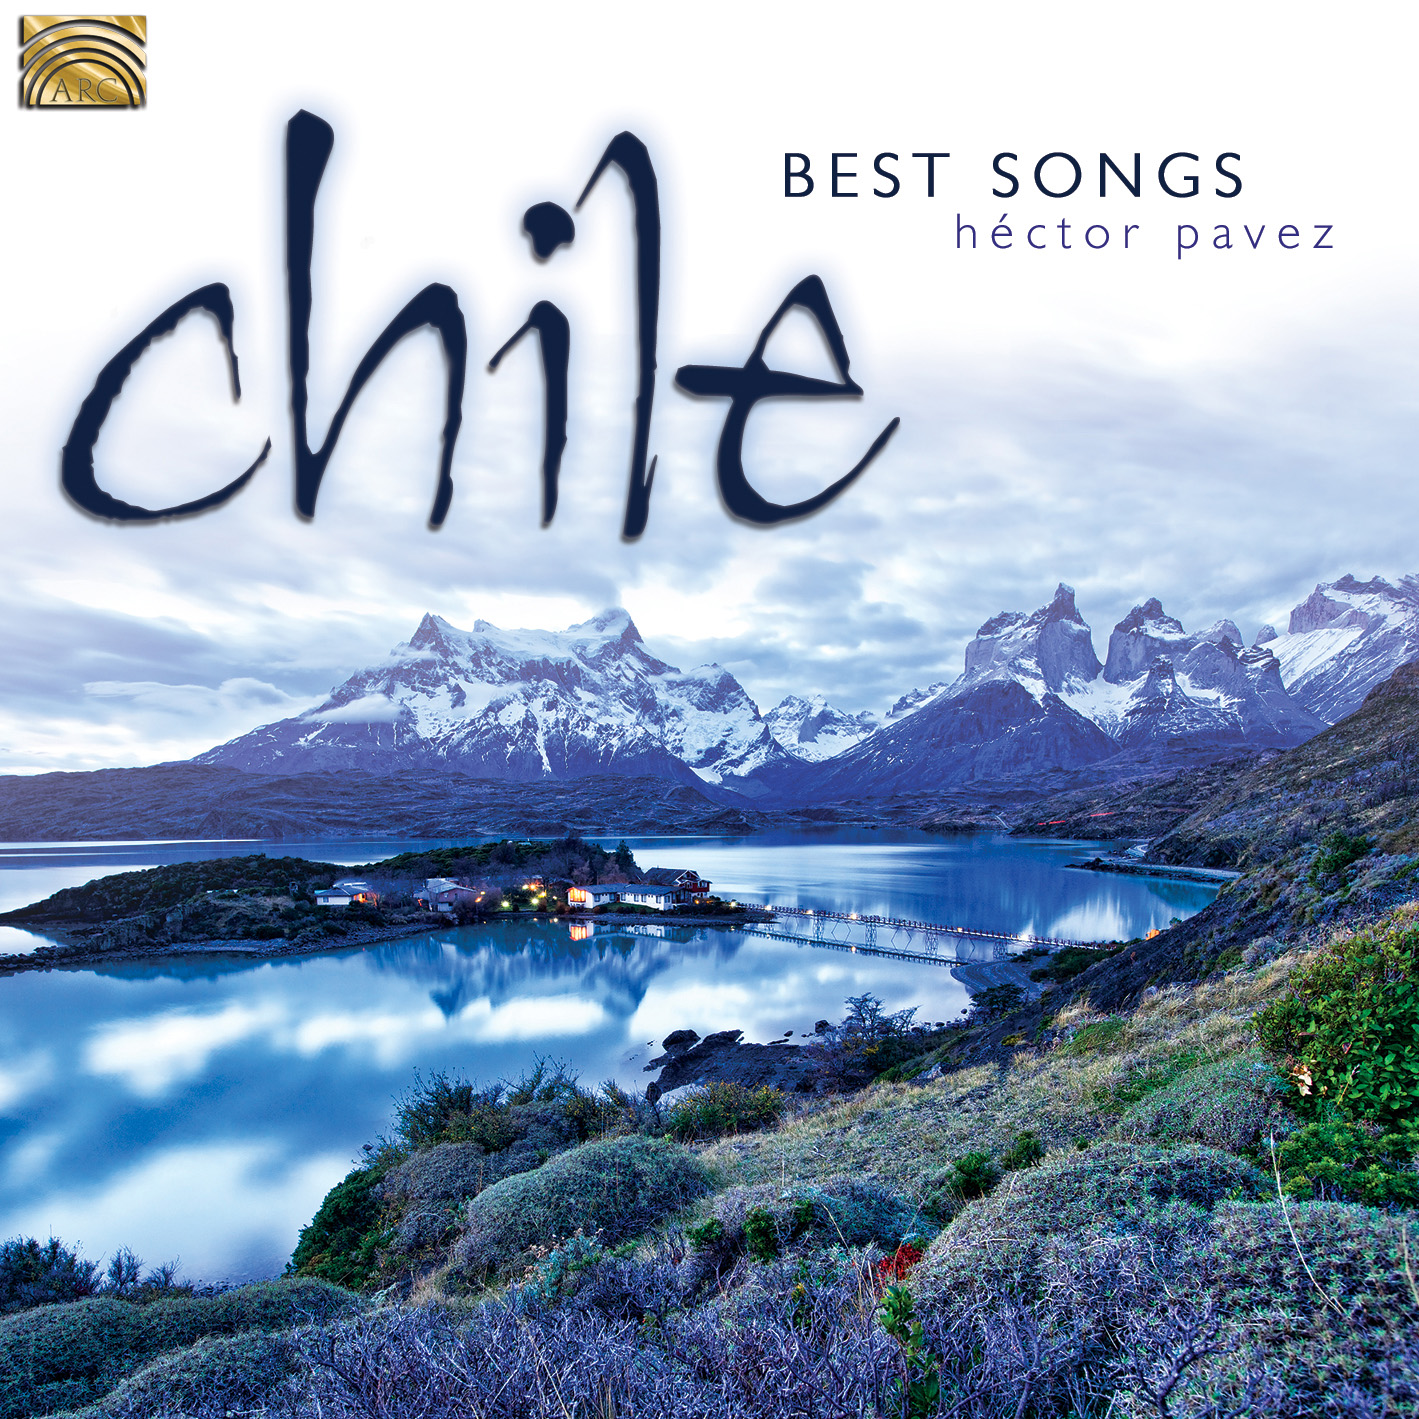 Chile: Best Songs